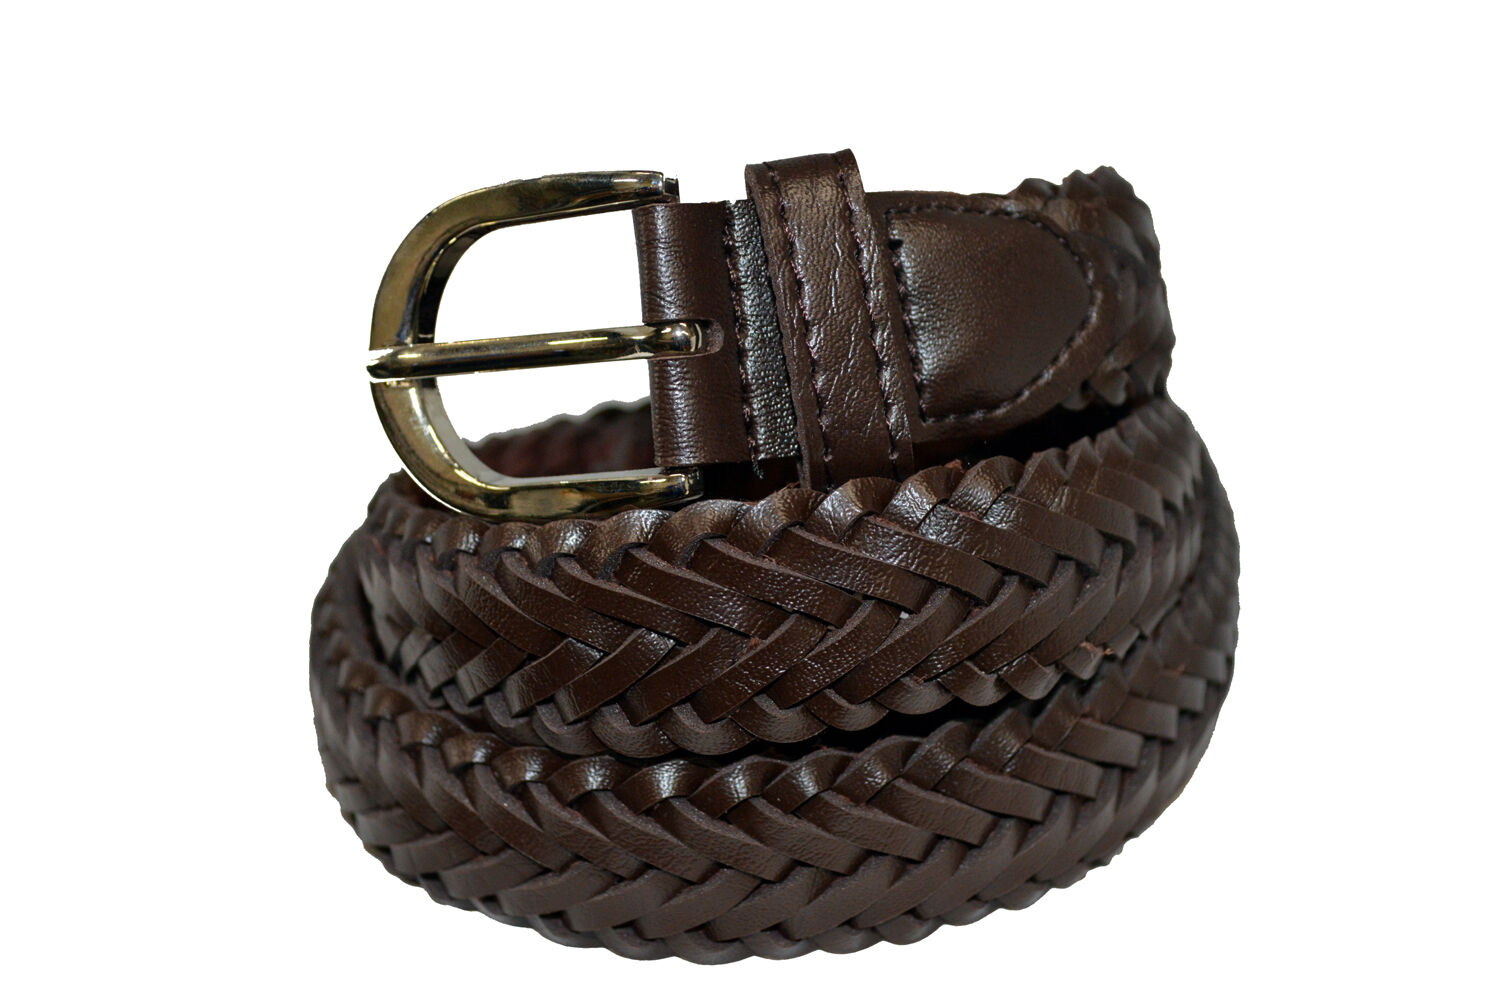 BELT BRAIDED BROWN MEN'S GENUINE LEATHER CASUAL BELT NEW